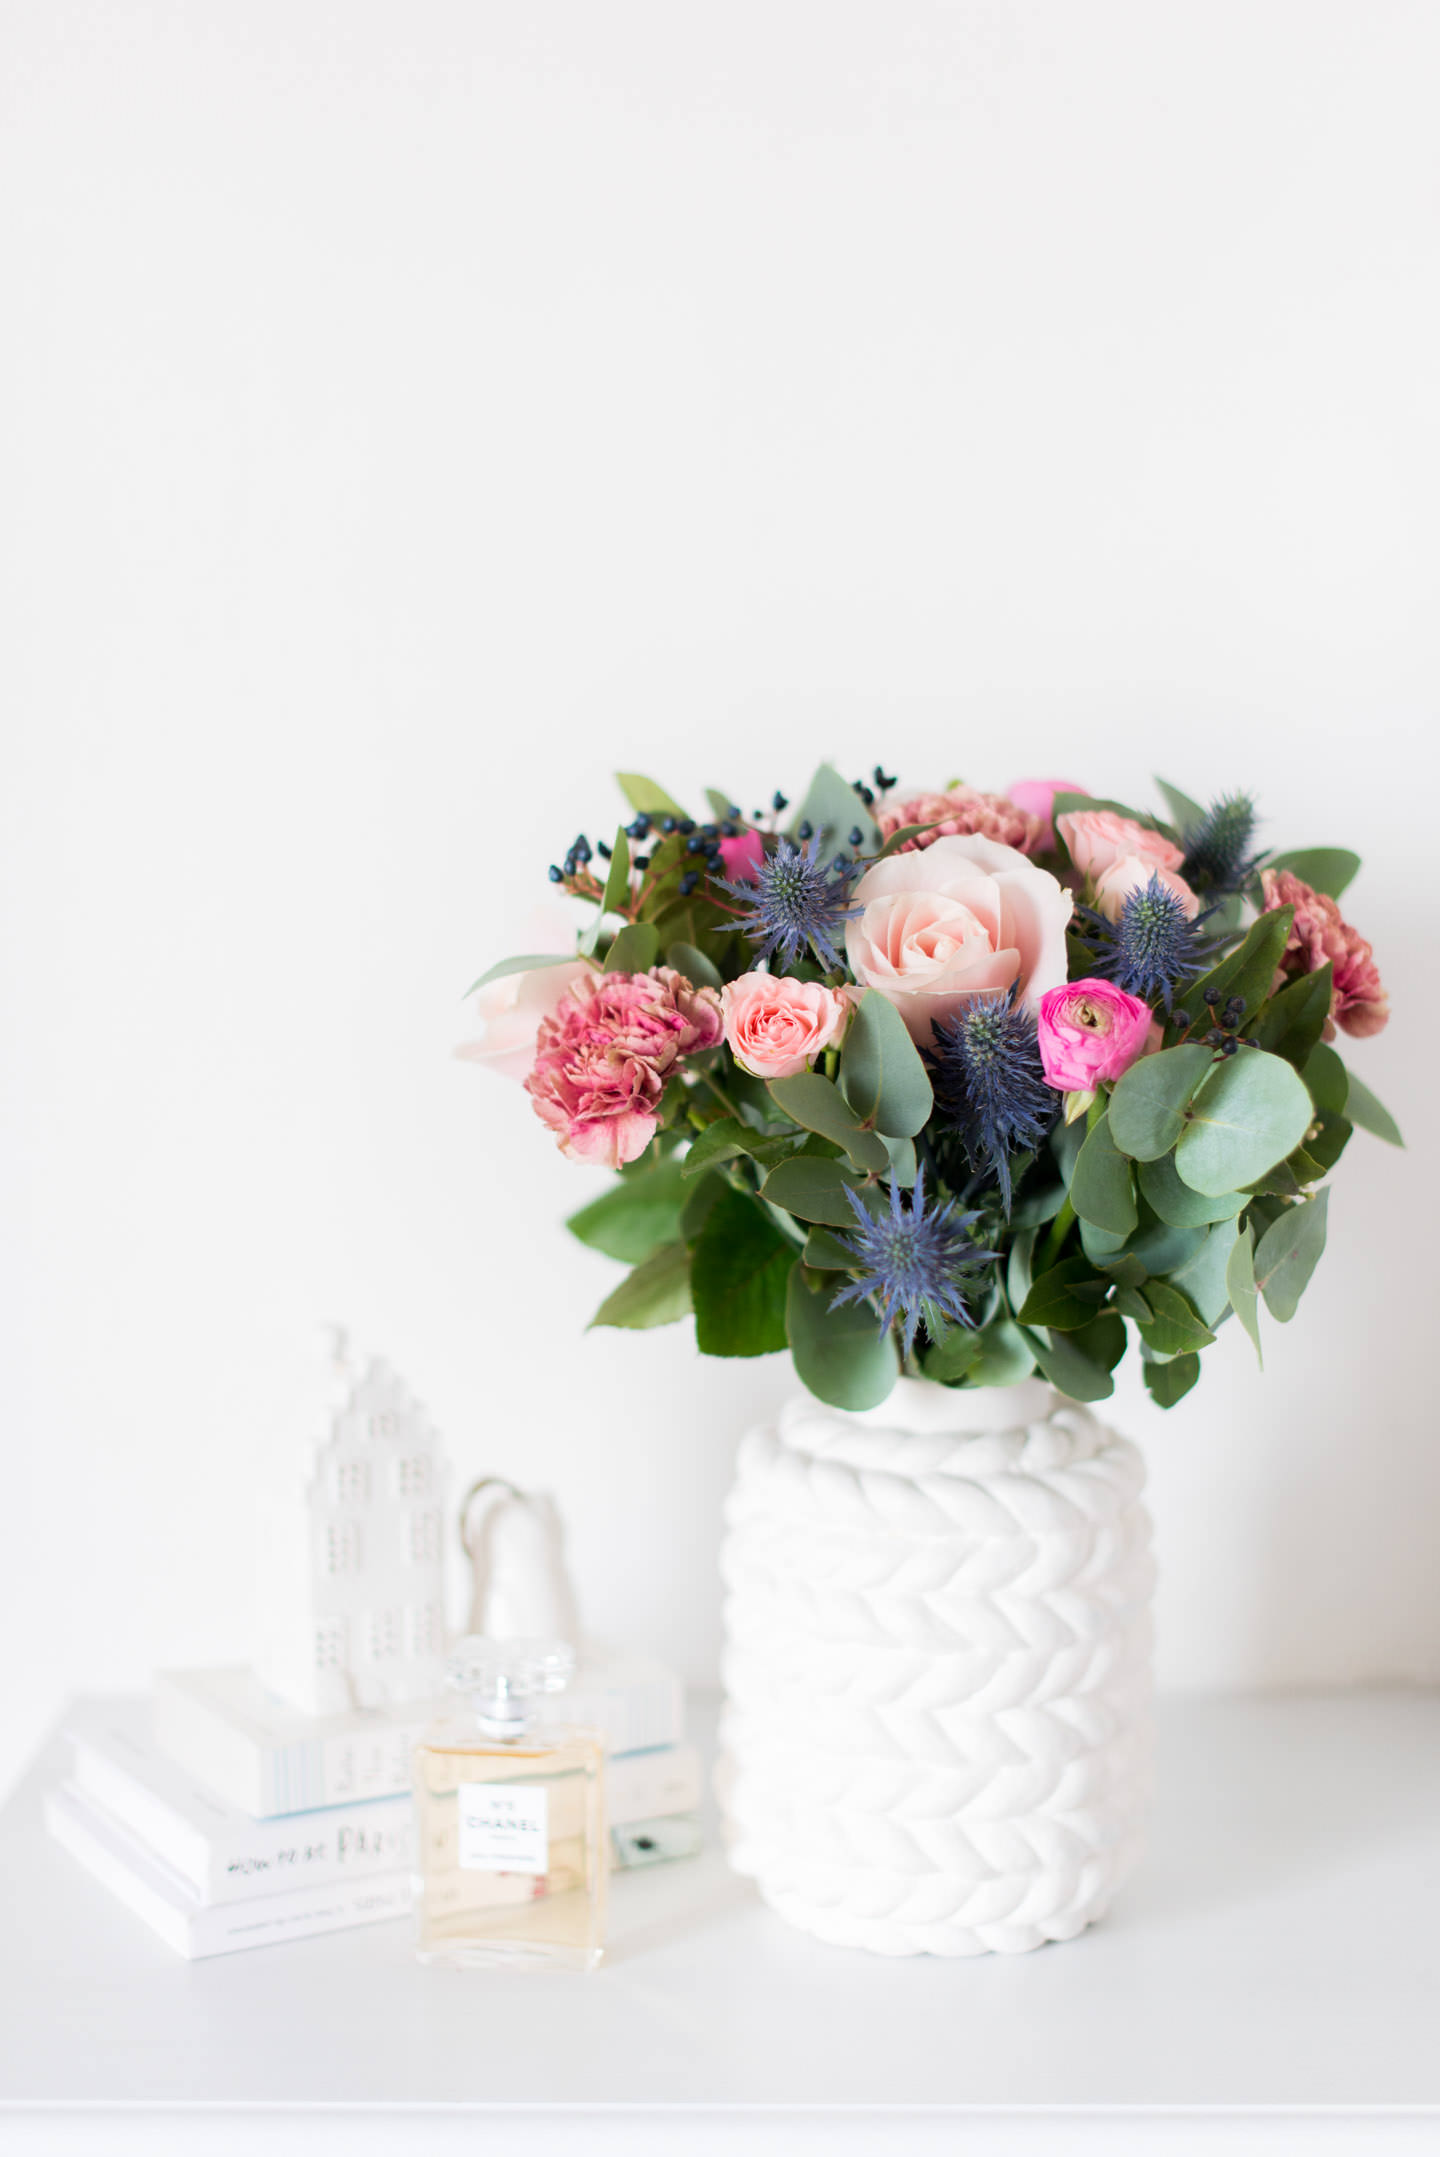 Blog-Mode-And-The-City-Lifestyle-Cinq-Petites-Choses-168-bouquet-bergamotte-paris